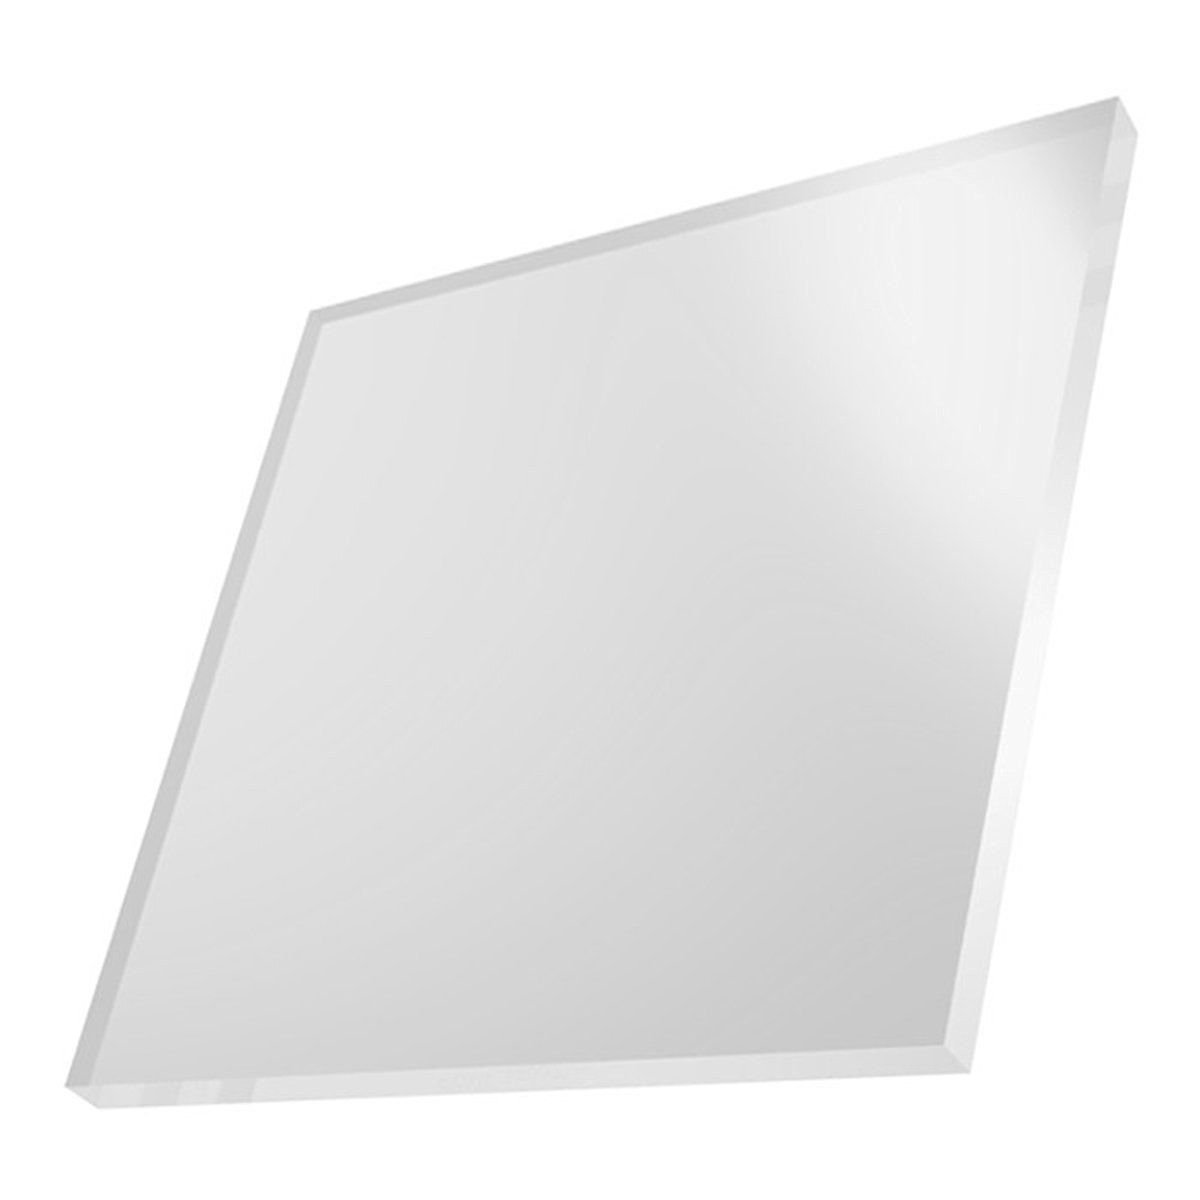 Plexiglass Acrylic Sheet Used in Wall Panels Trophies Table Top 12x12 3mm White